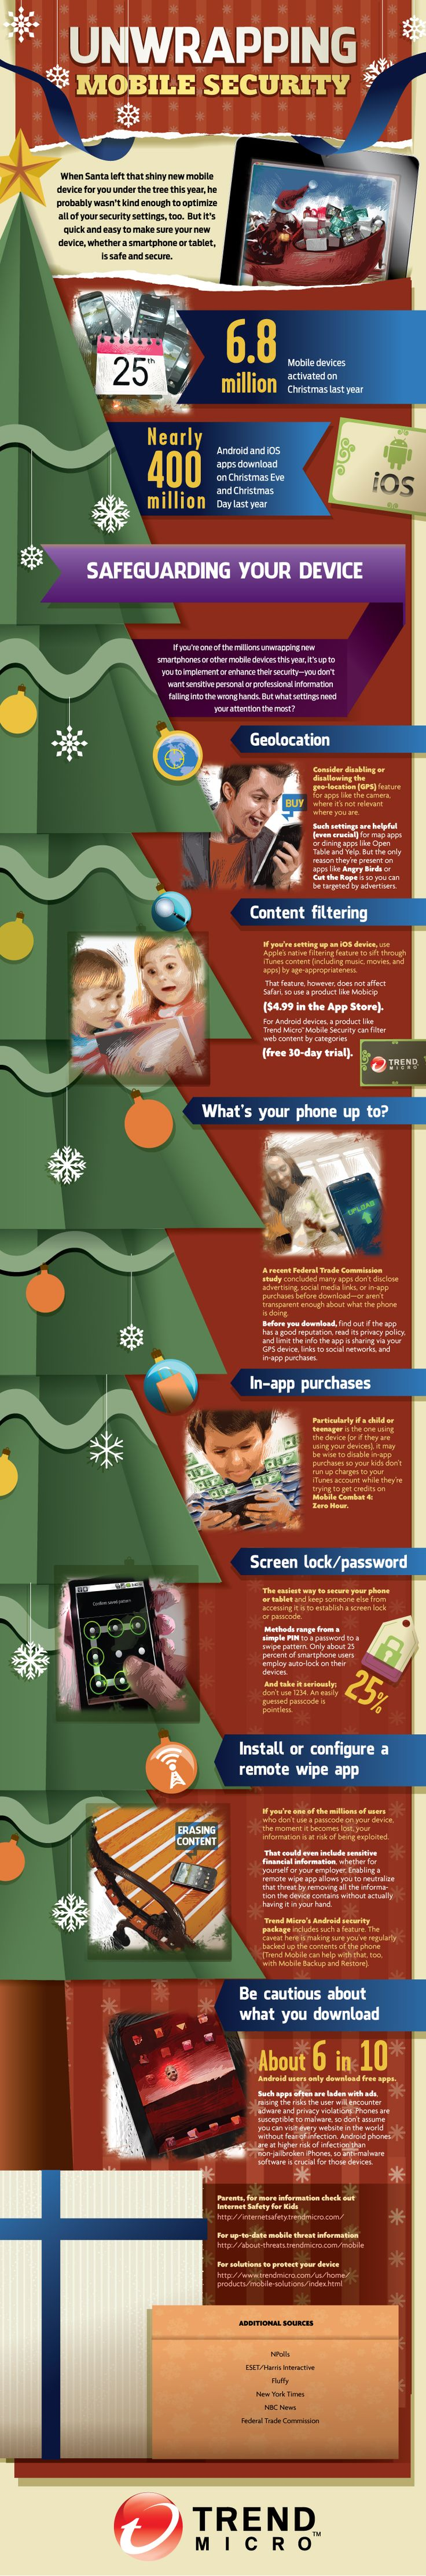 Unwrapping Mobile Security During the Holidays